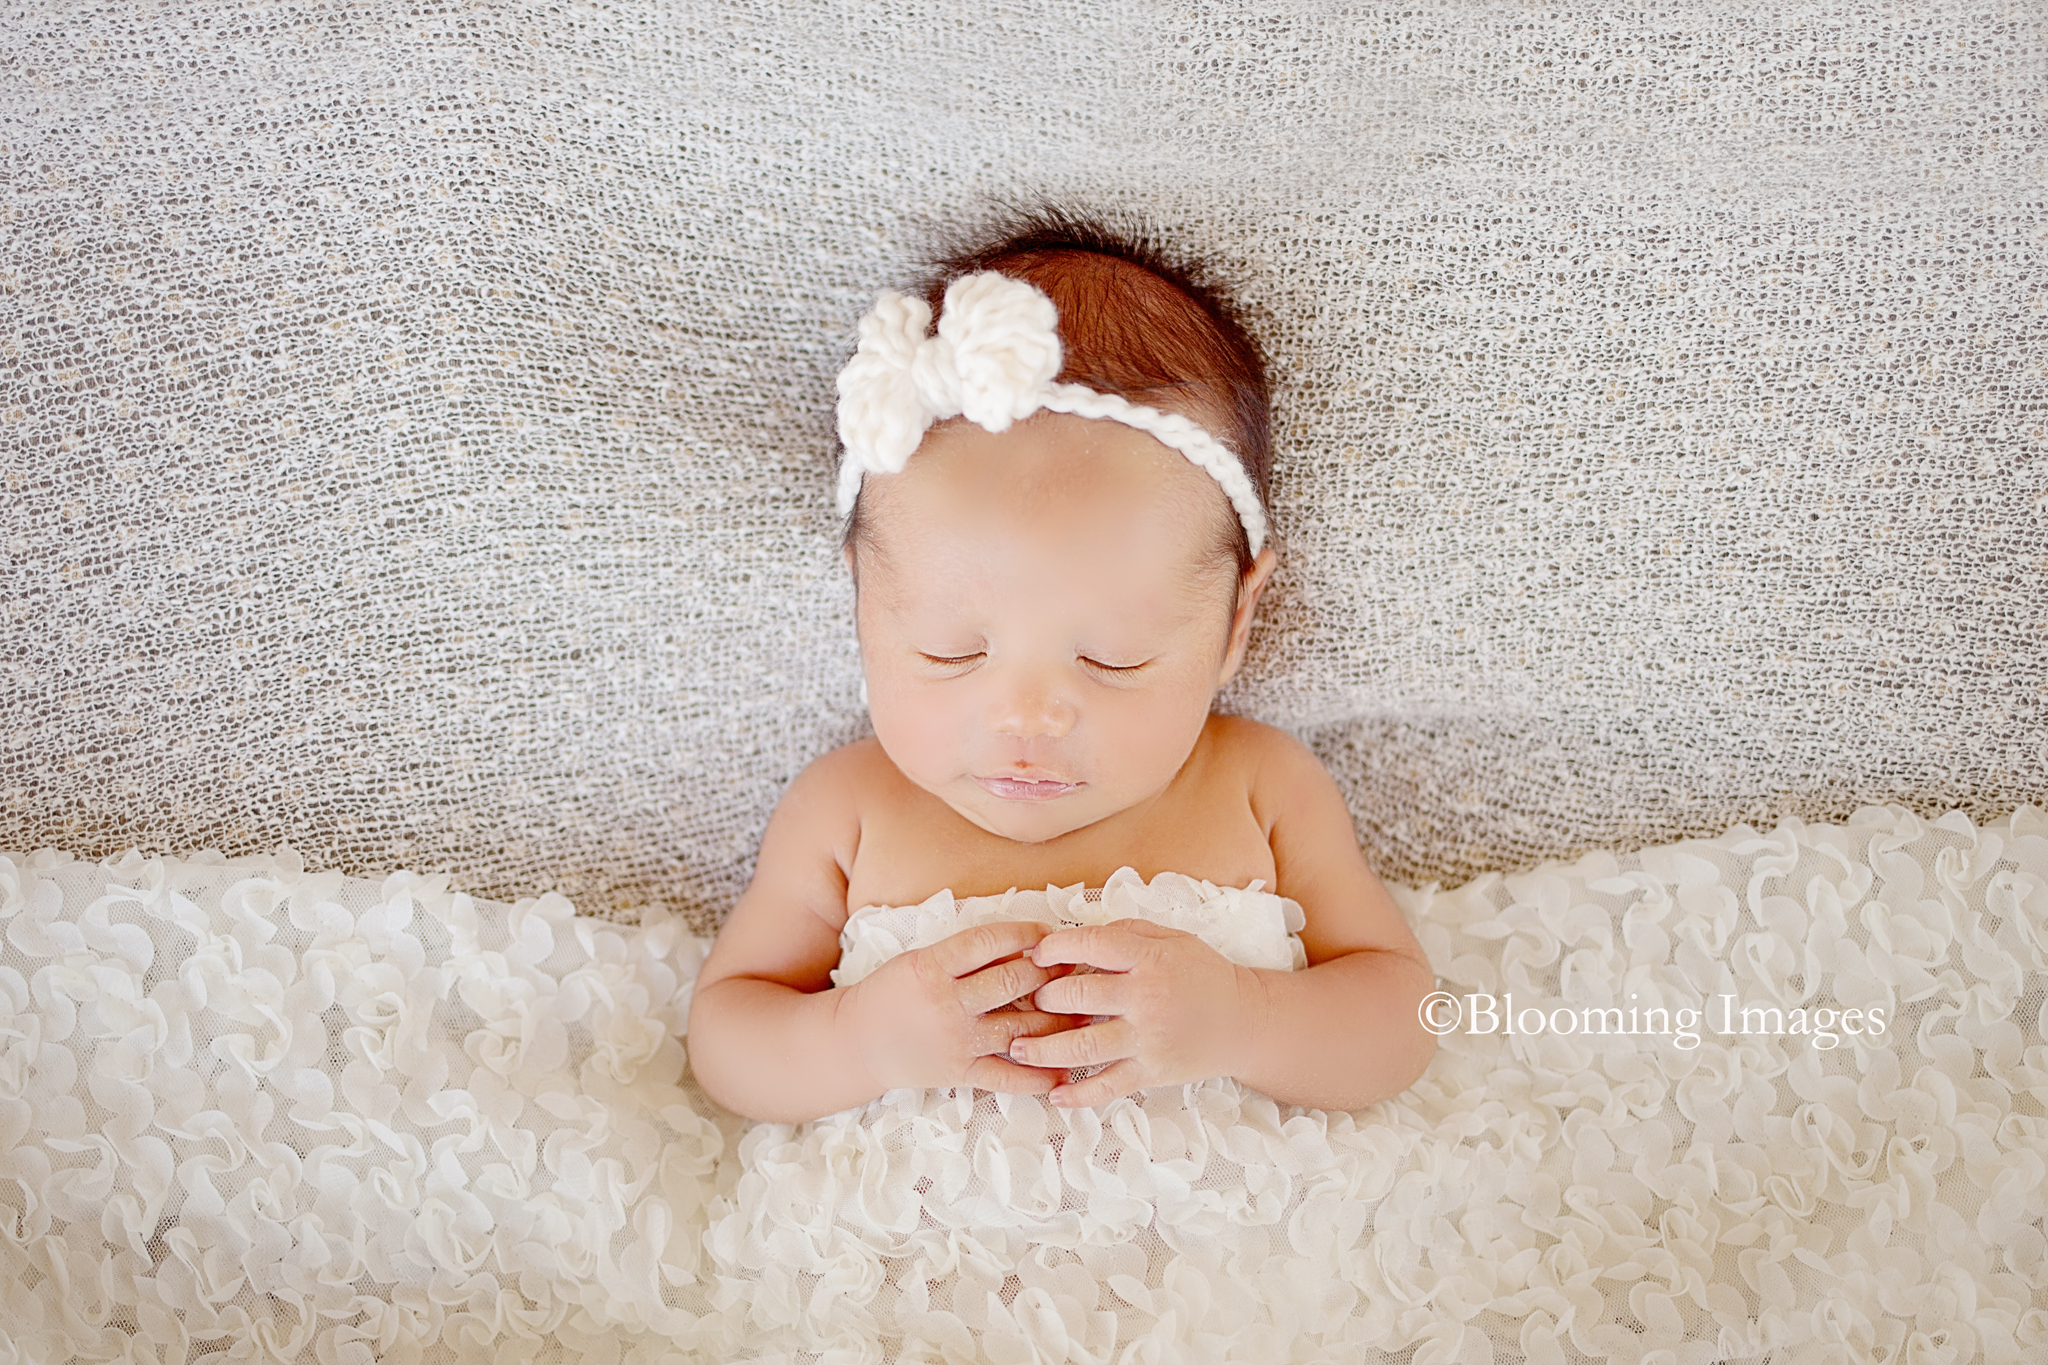 Albuquerque Newborn Photographers, Albuquerque Newborn Photographer, Newborn Photographers in Albuquerque, Santa Fe Newborn Photographer